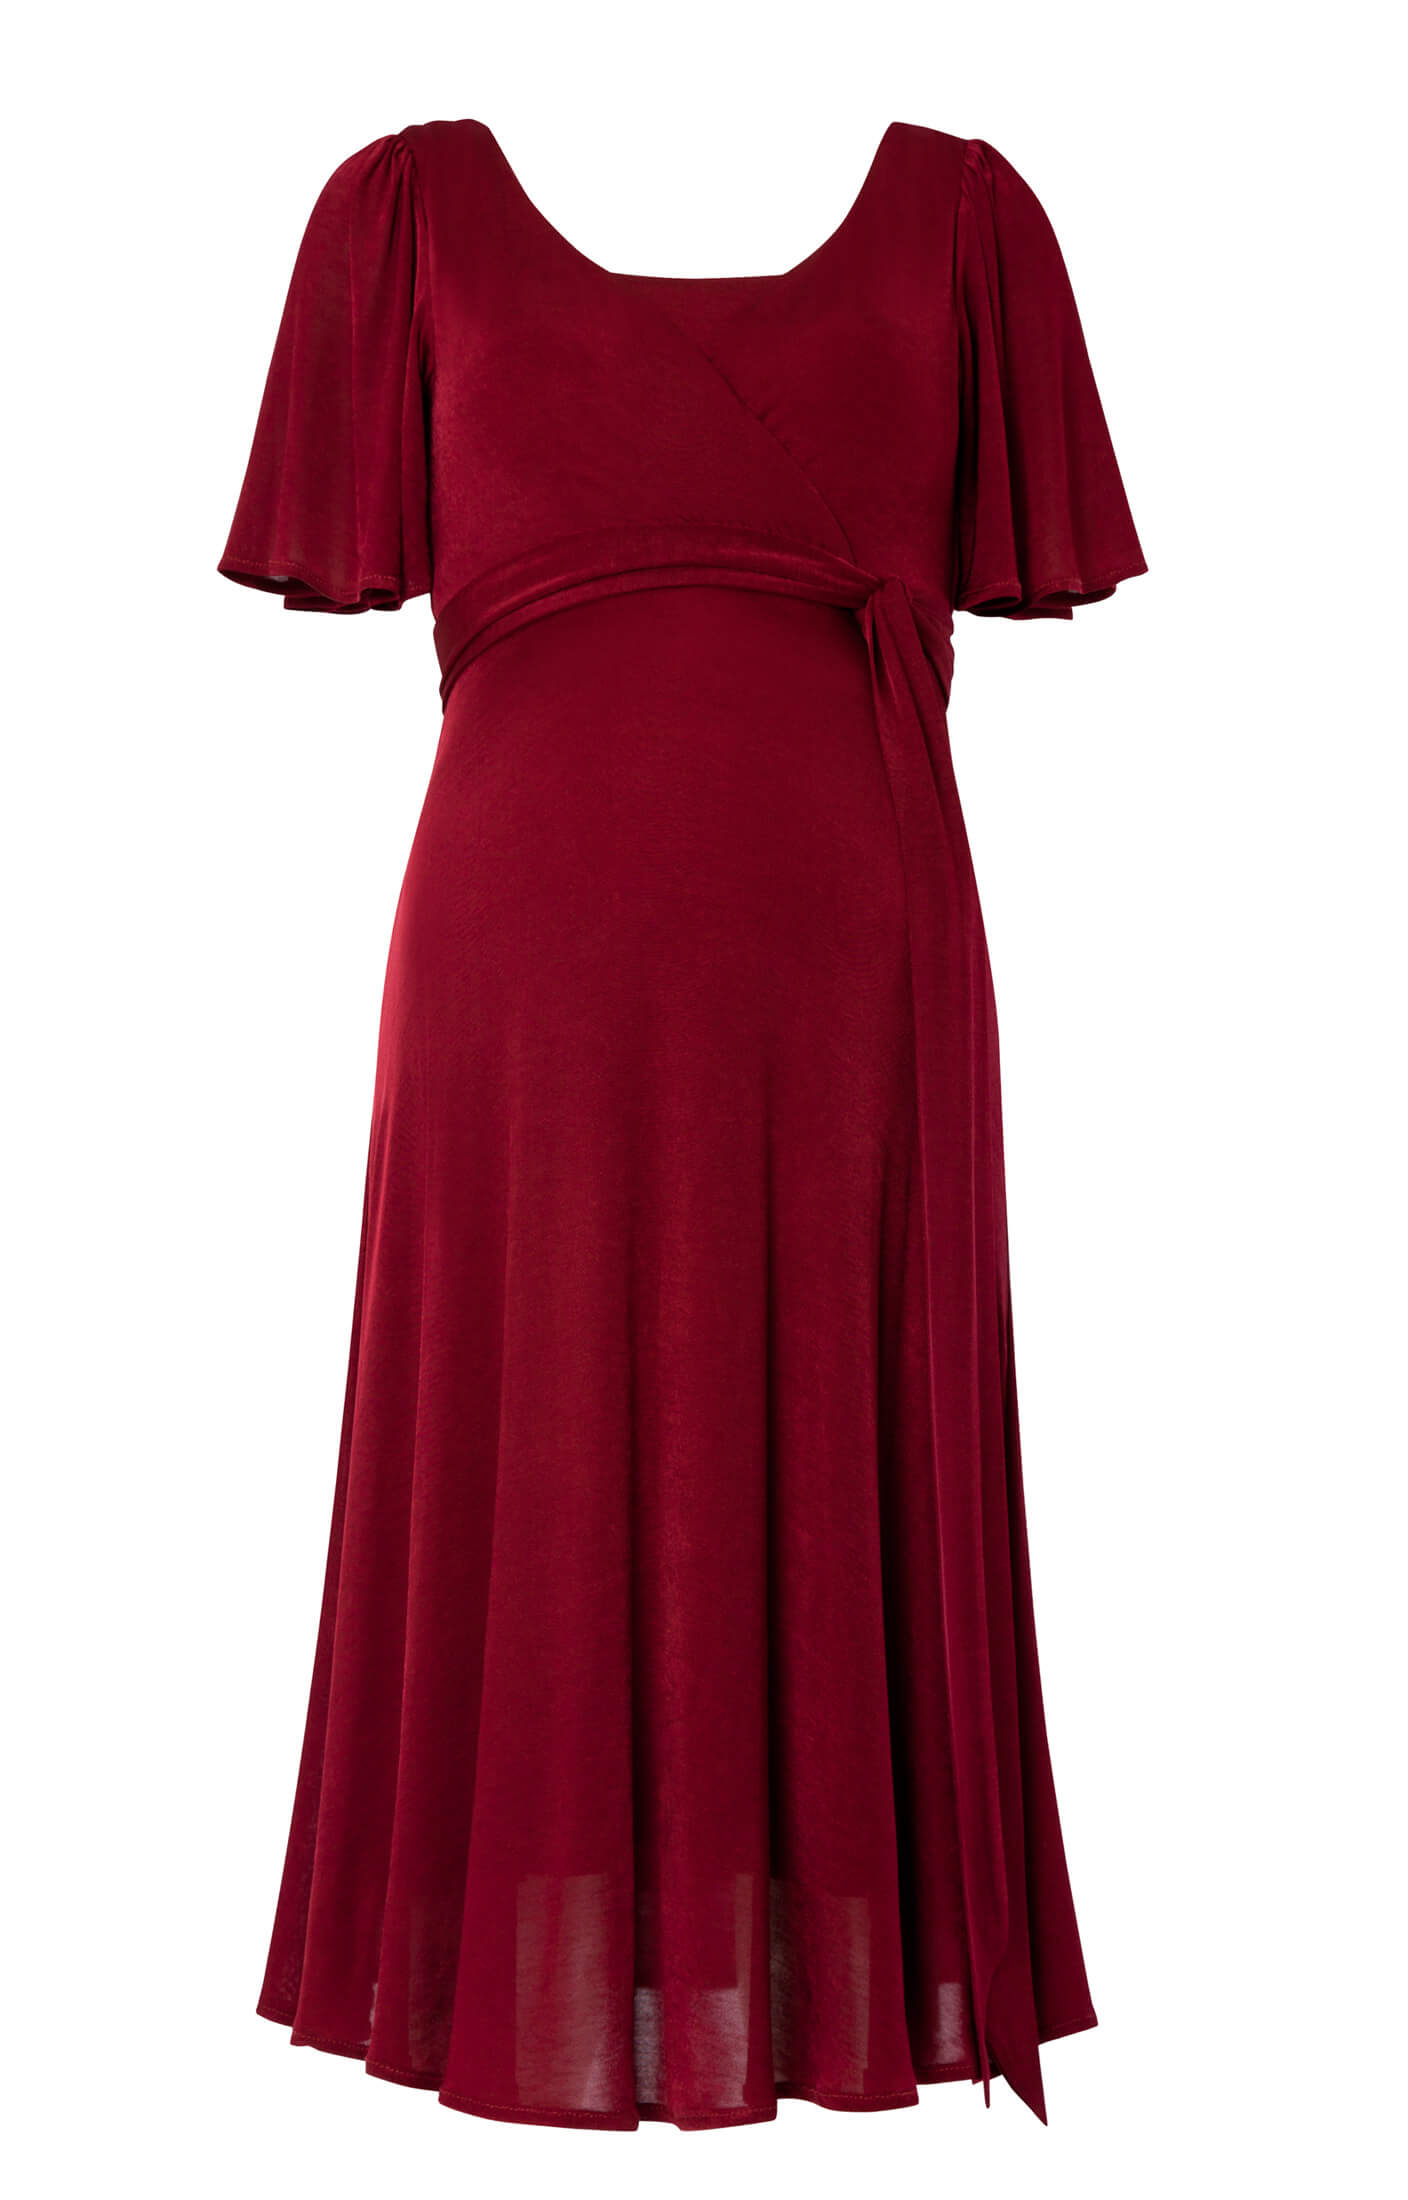 a7ac6f4e6c70e Alicia Nursing Dress Berry - Maternity Wedding Dresses, Evening Wear and  Party Clothes by Tiffany Rose UK